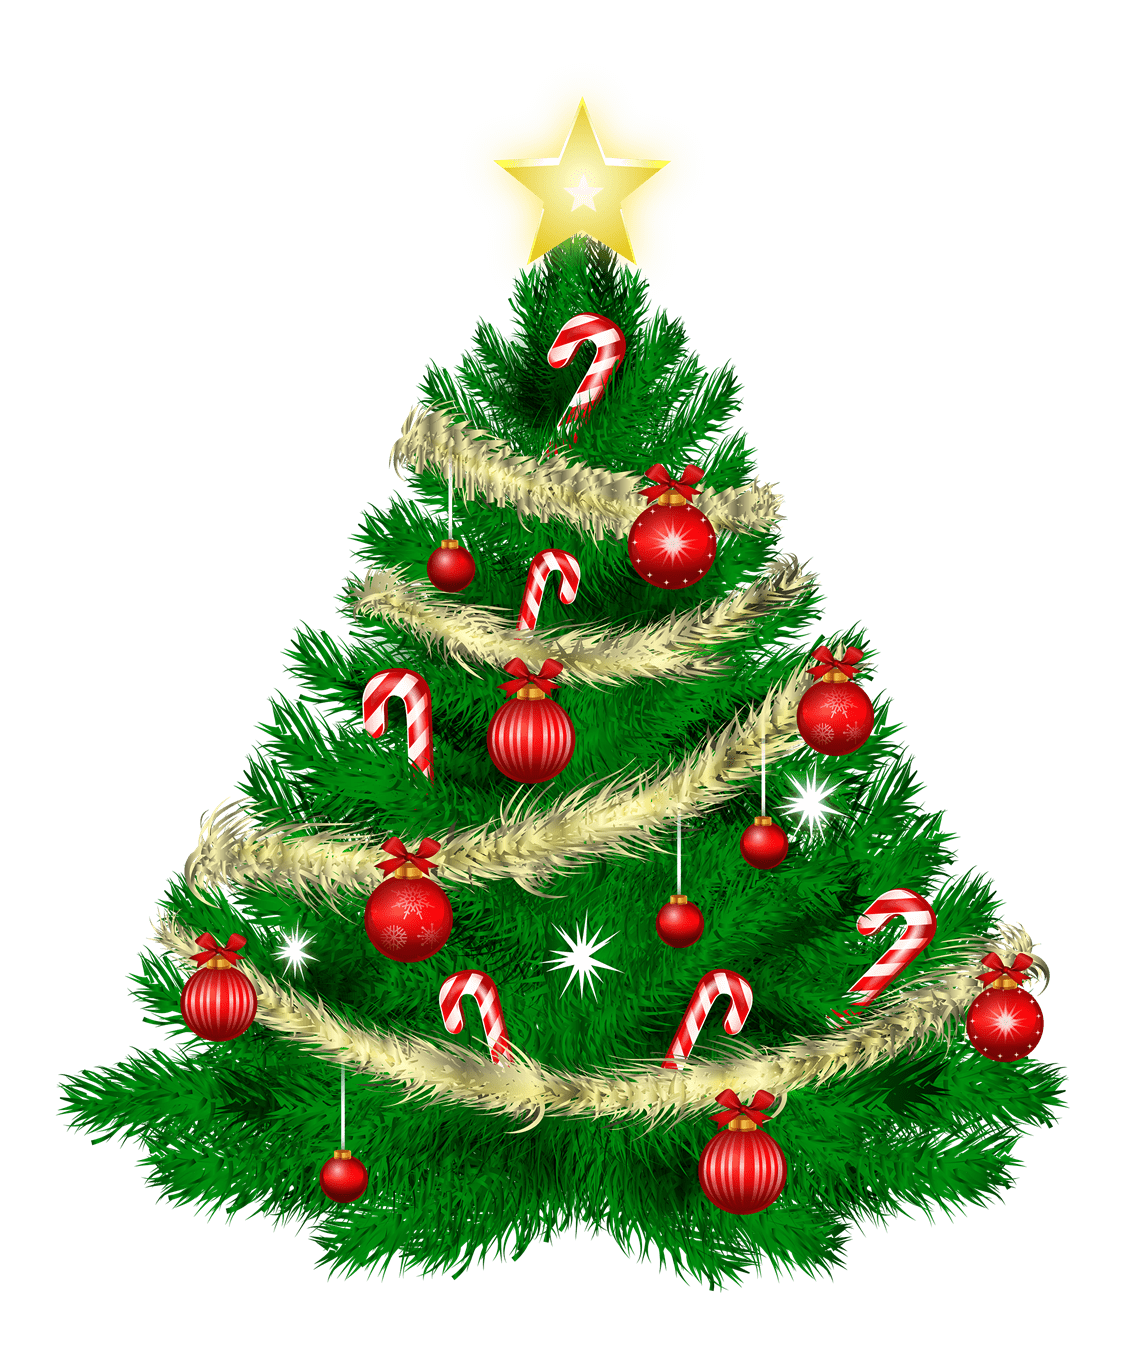 cartoon christmas tree png transparent image cartoon christmas tree png transparent